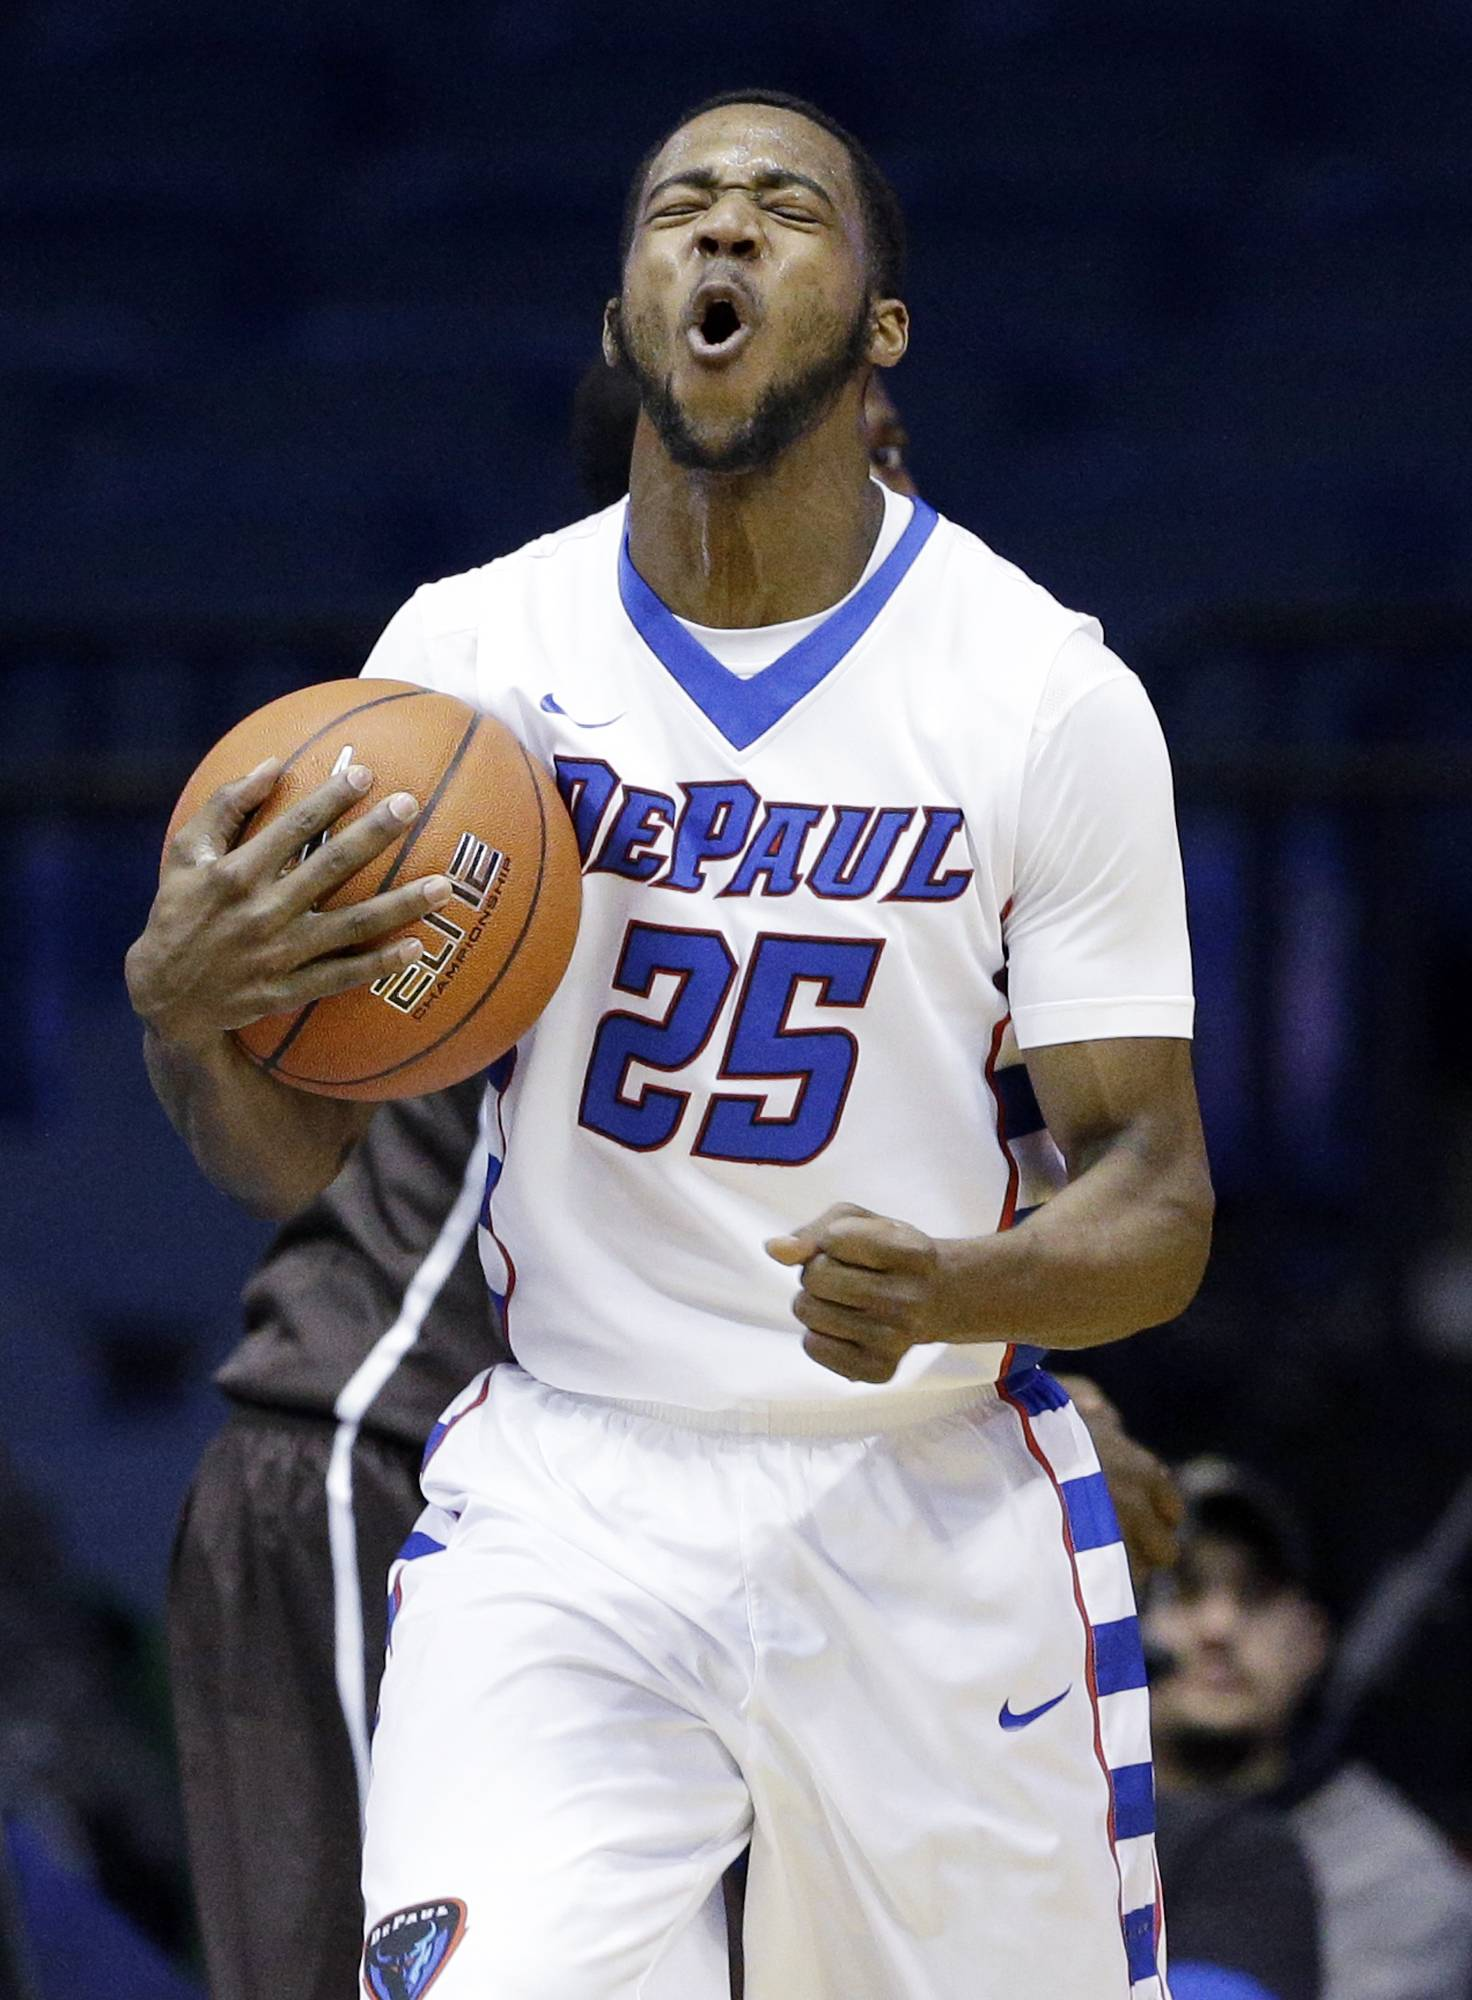 DePaul guard Durrell McDonald (25) reacts after getting called for a foul during the second half against Lehigh in Rosemont.